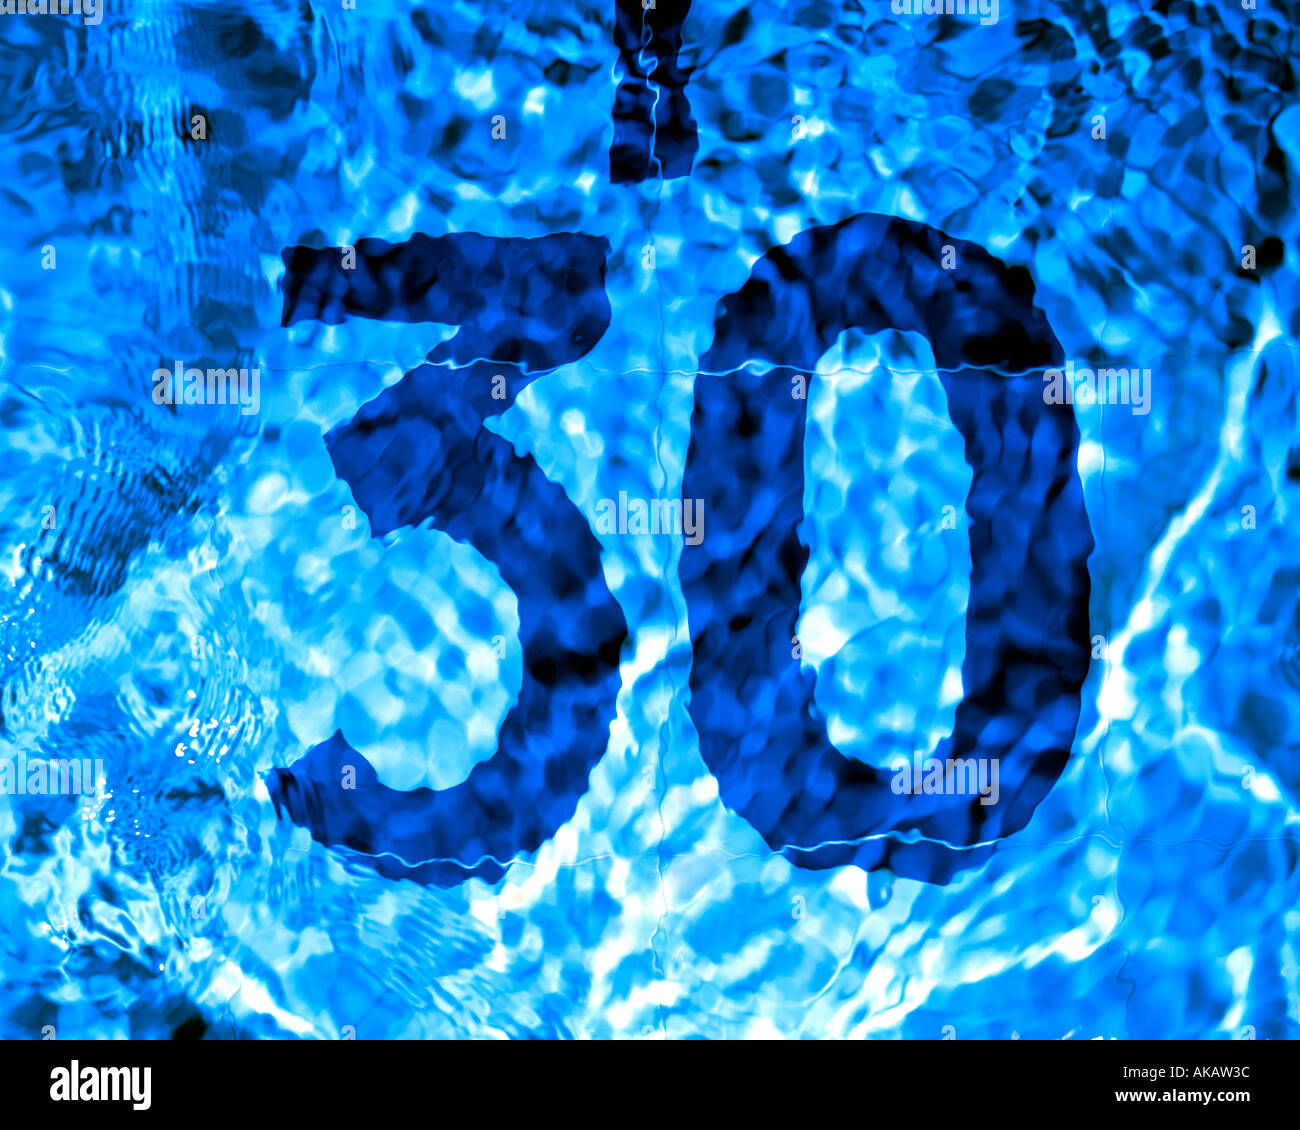 30 under water in a swimming pool - Stock Image